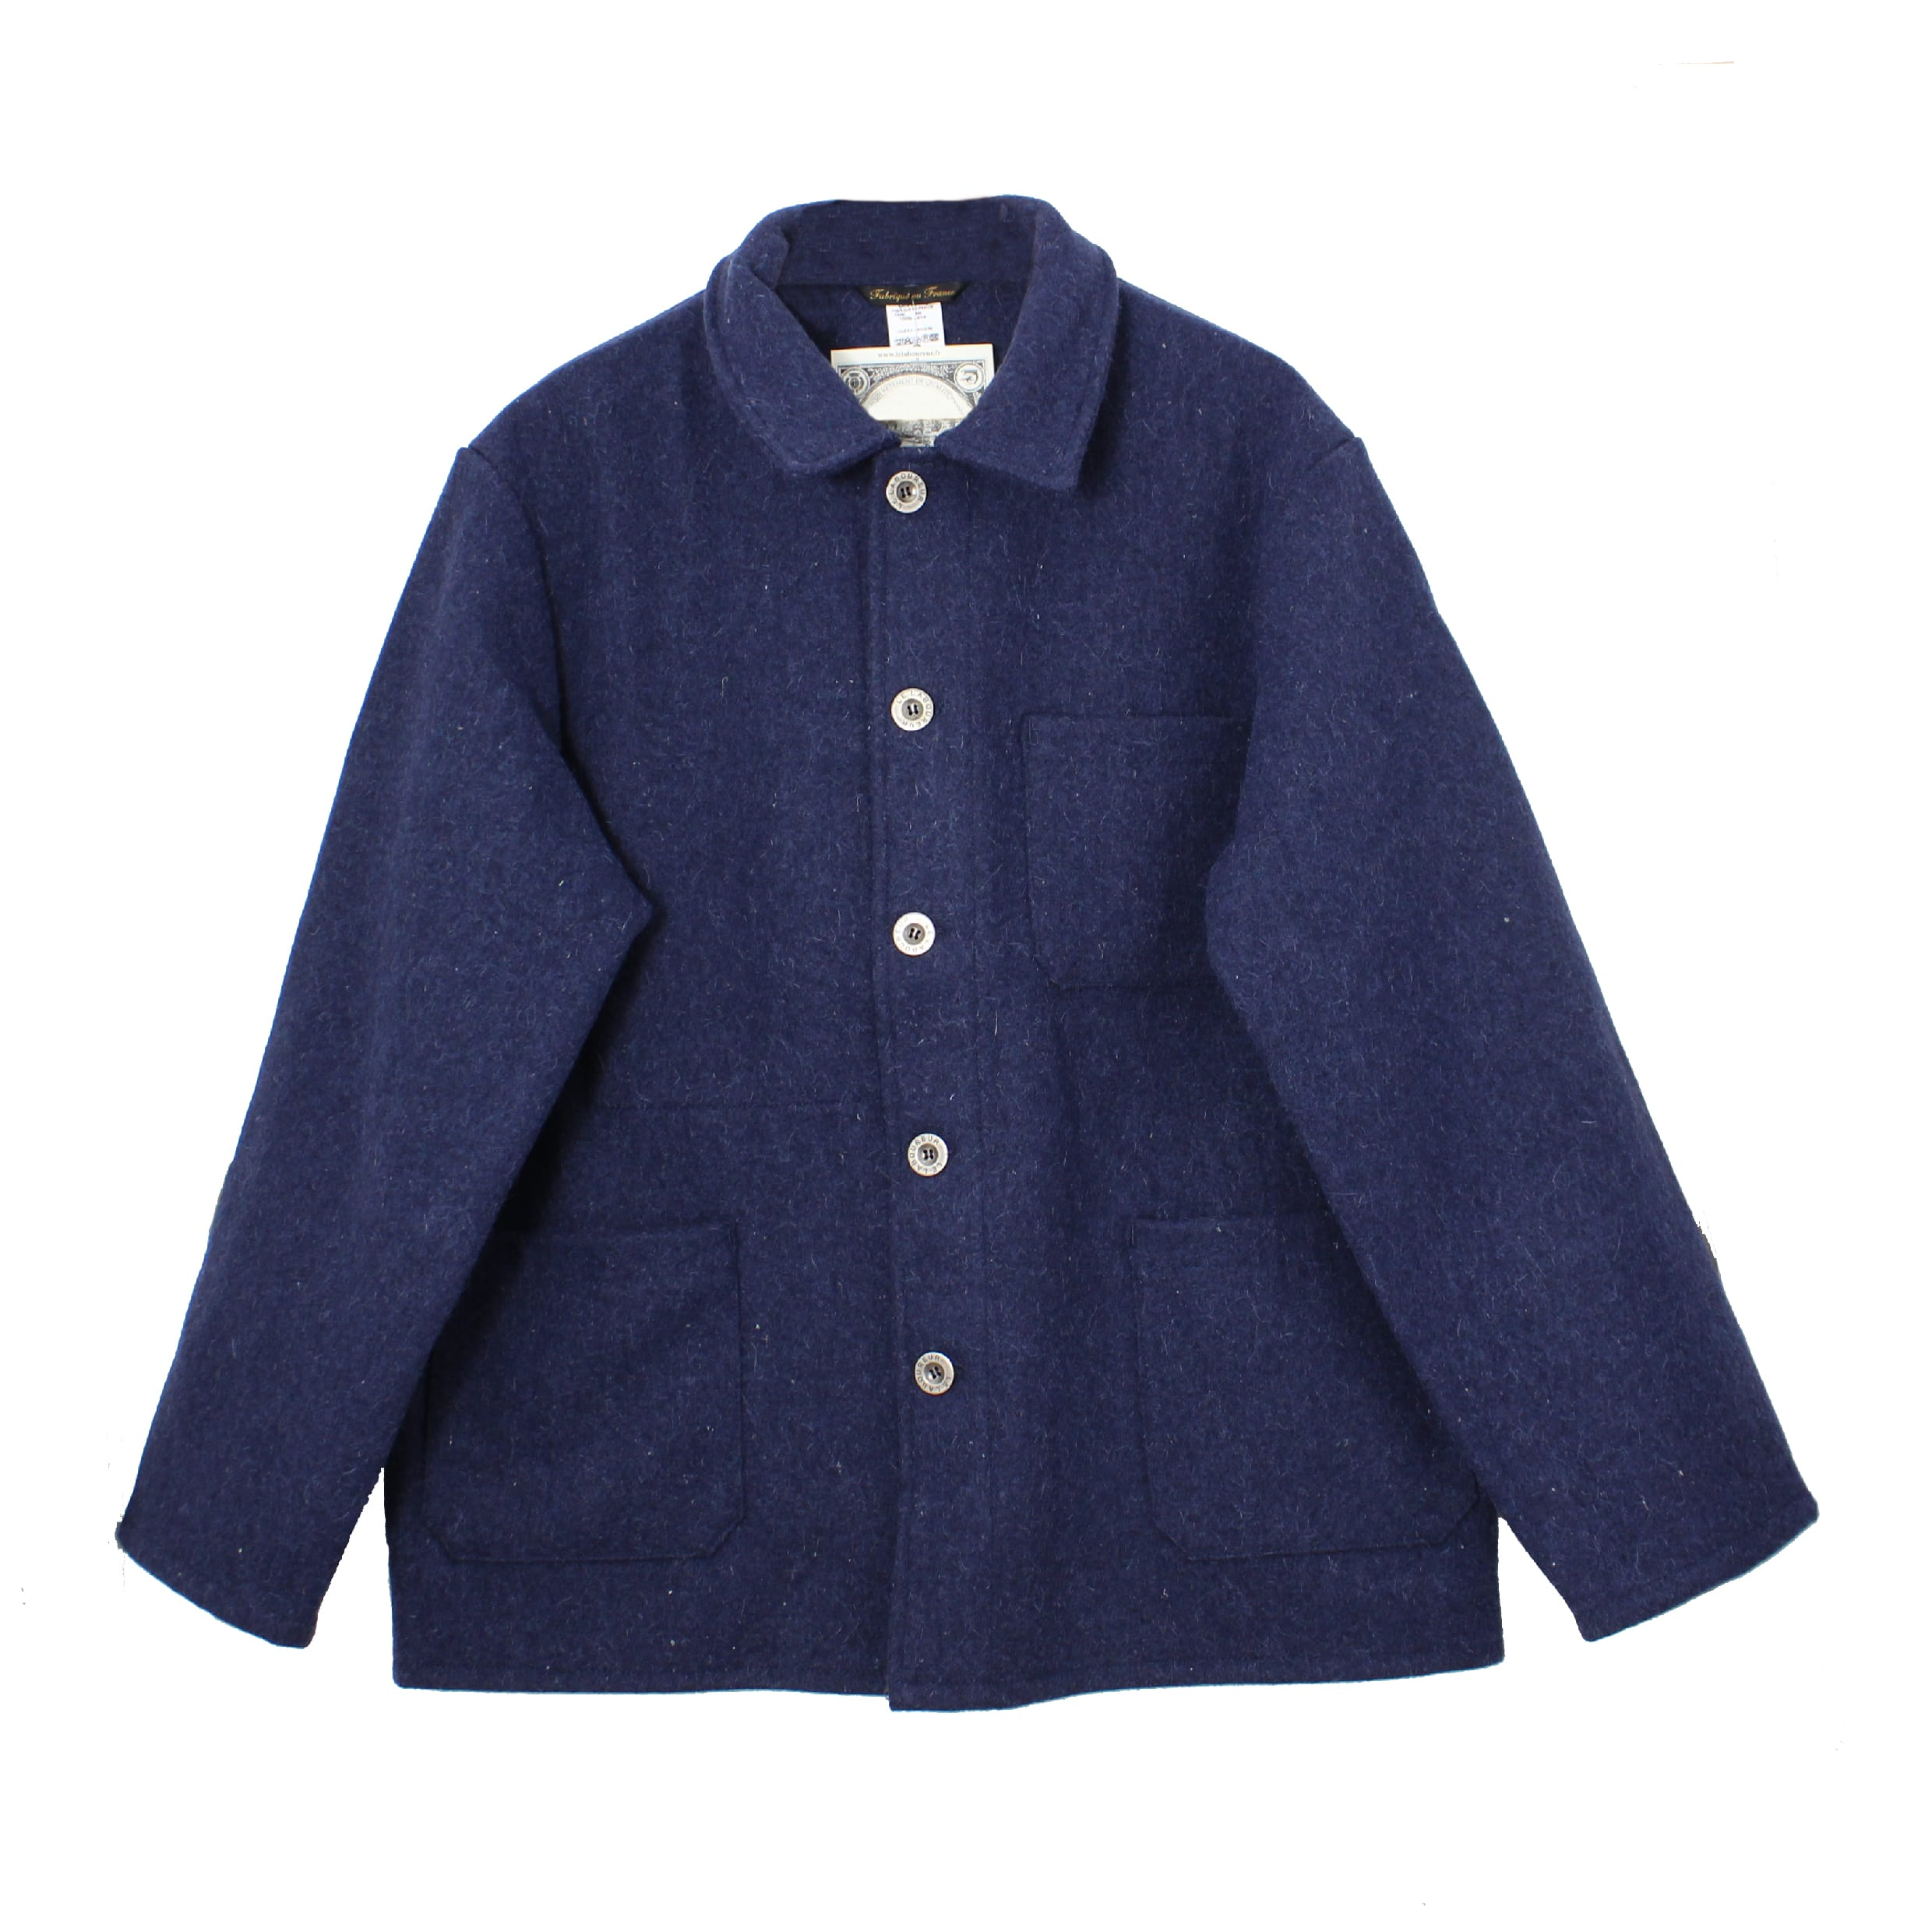 Le Laboureur Blue Wool French Workwear Jacket